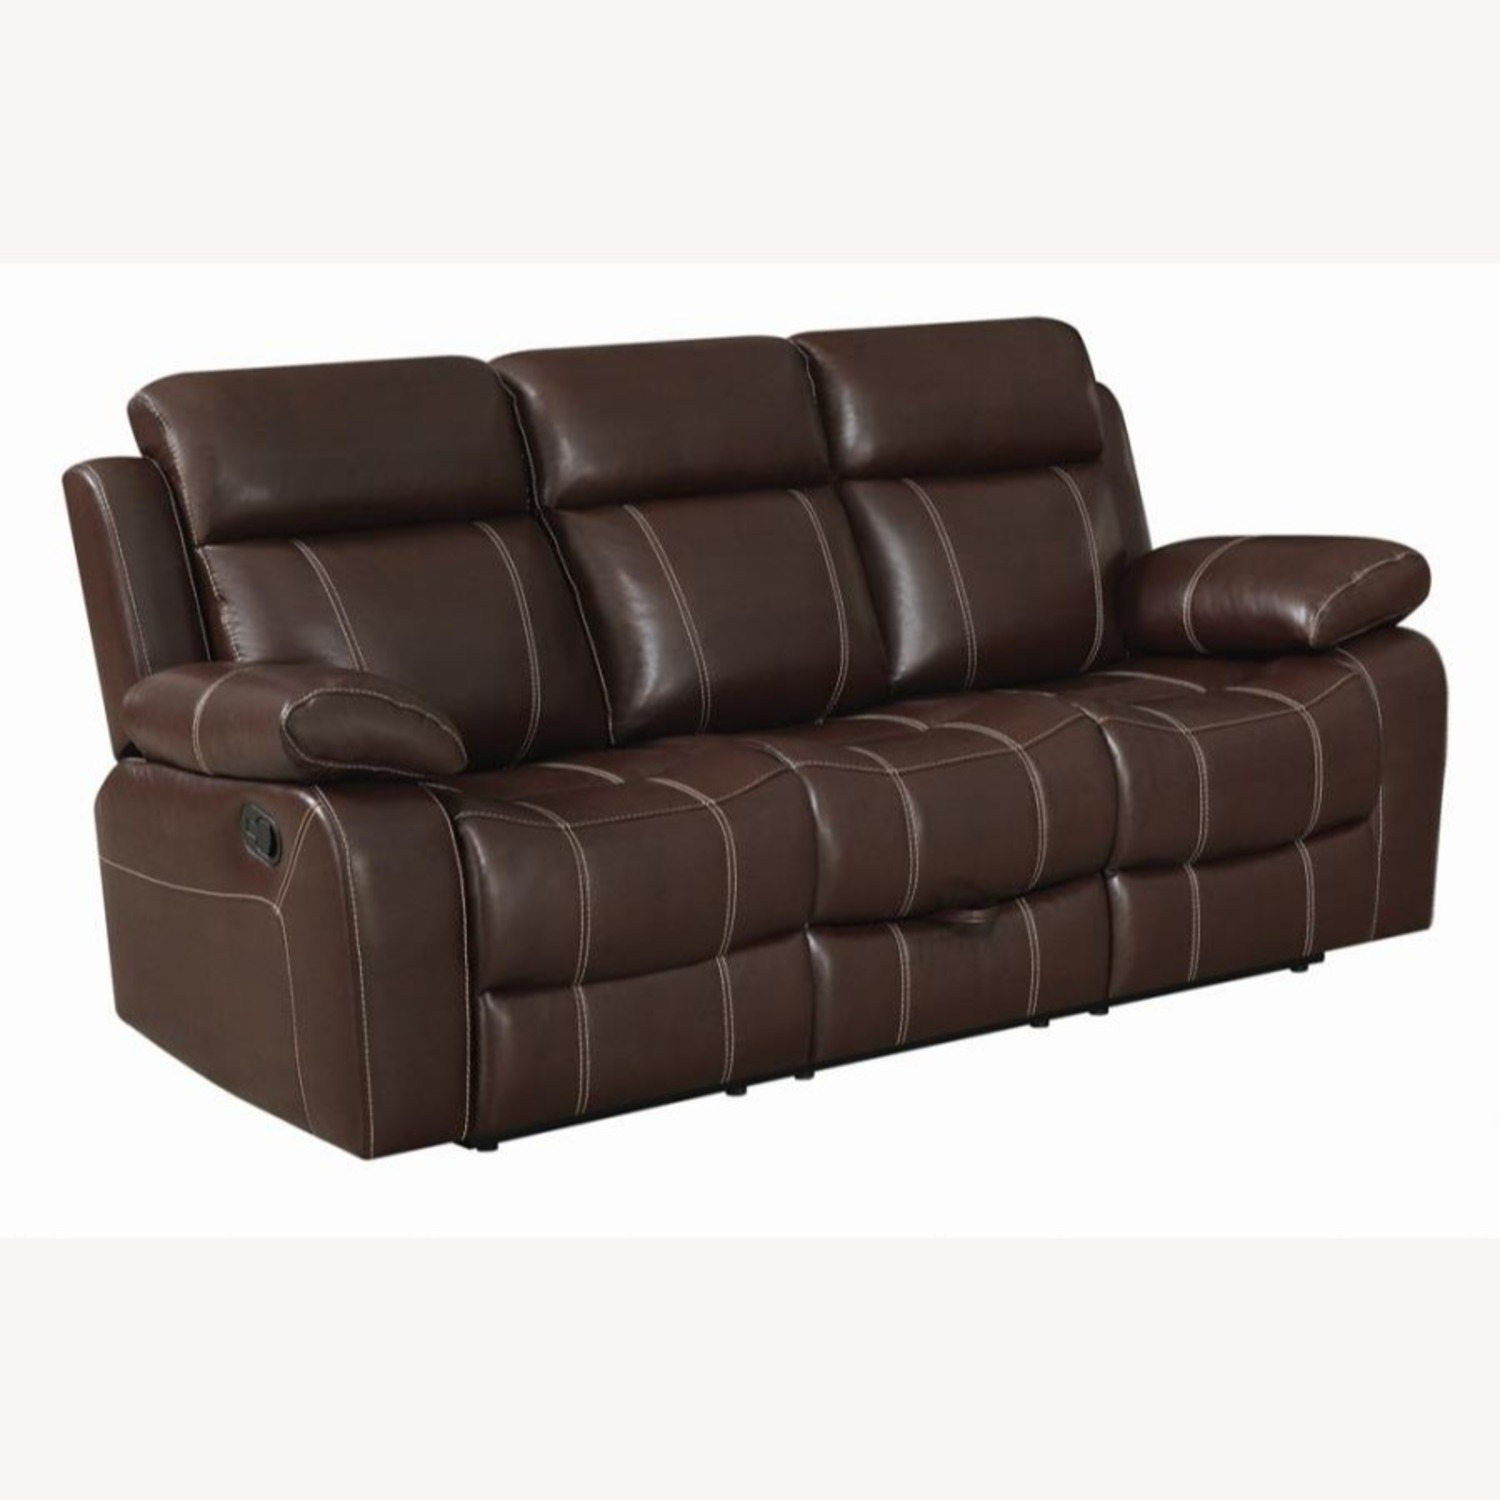 Motion Sofa In Chestnut Leather W/ Storage Drawer - image-0